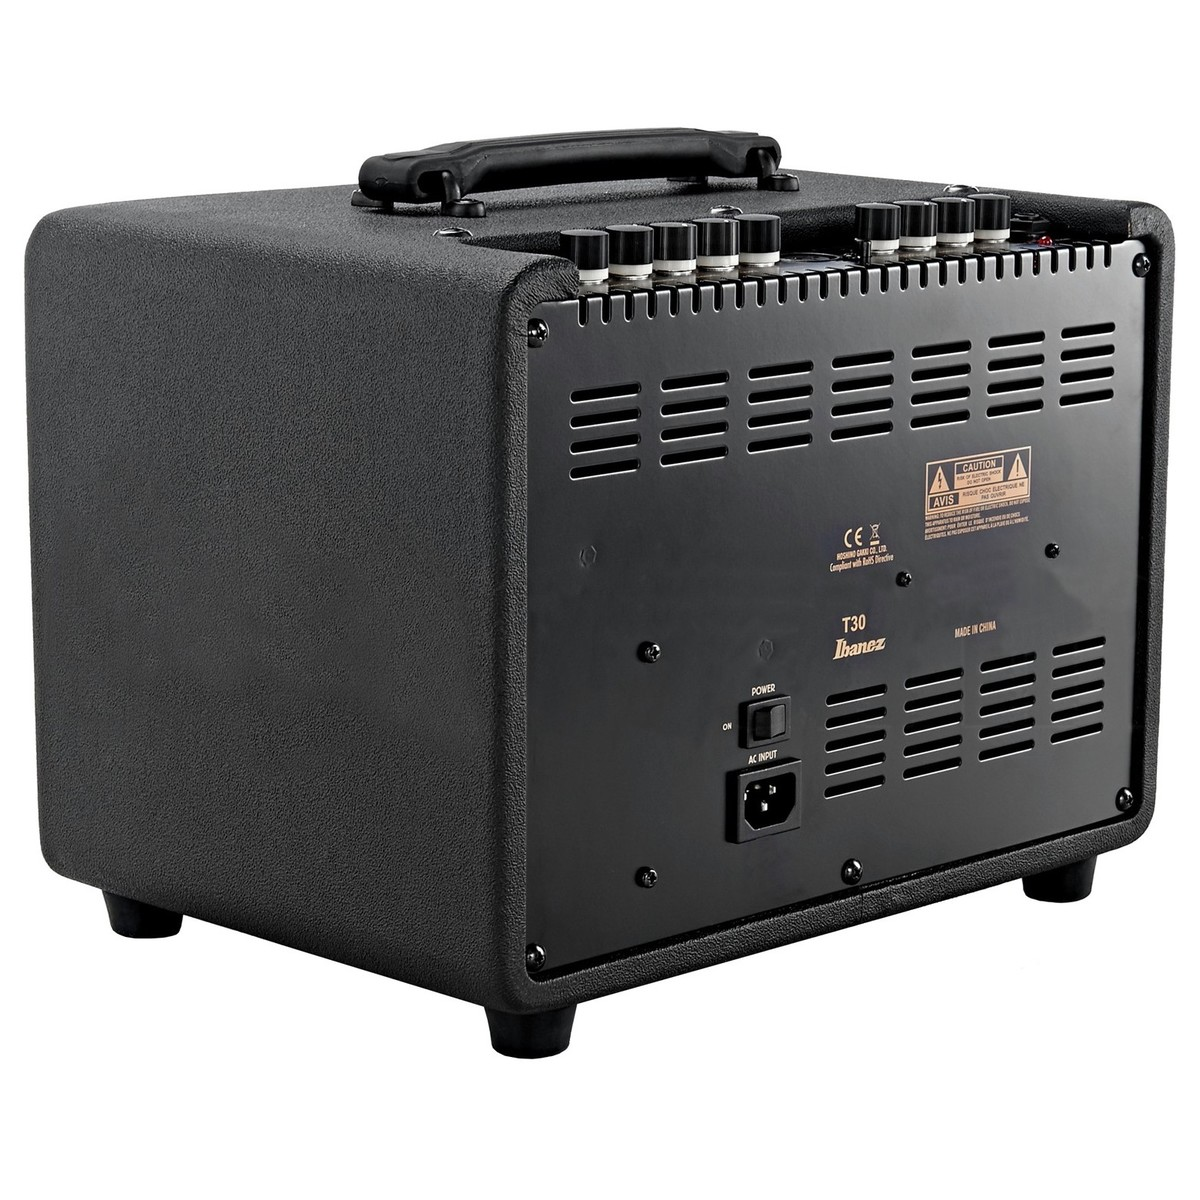 ibanez t30 e troubadour acoustic guitar combo amp box opened at gear4music. Black Bedroom Furniture Sets. Home Design Ideas